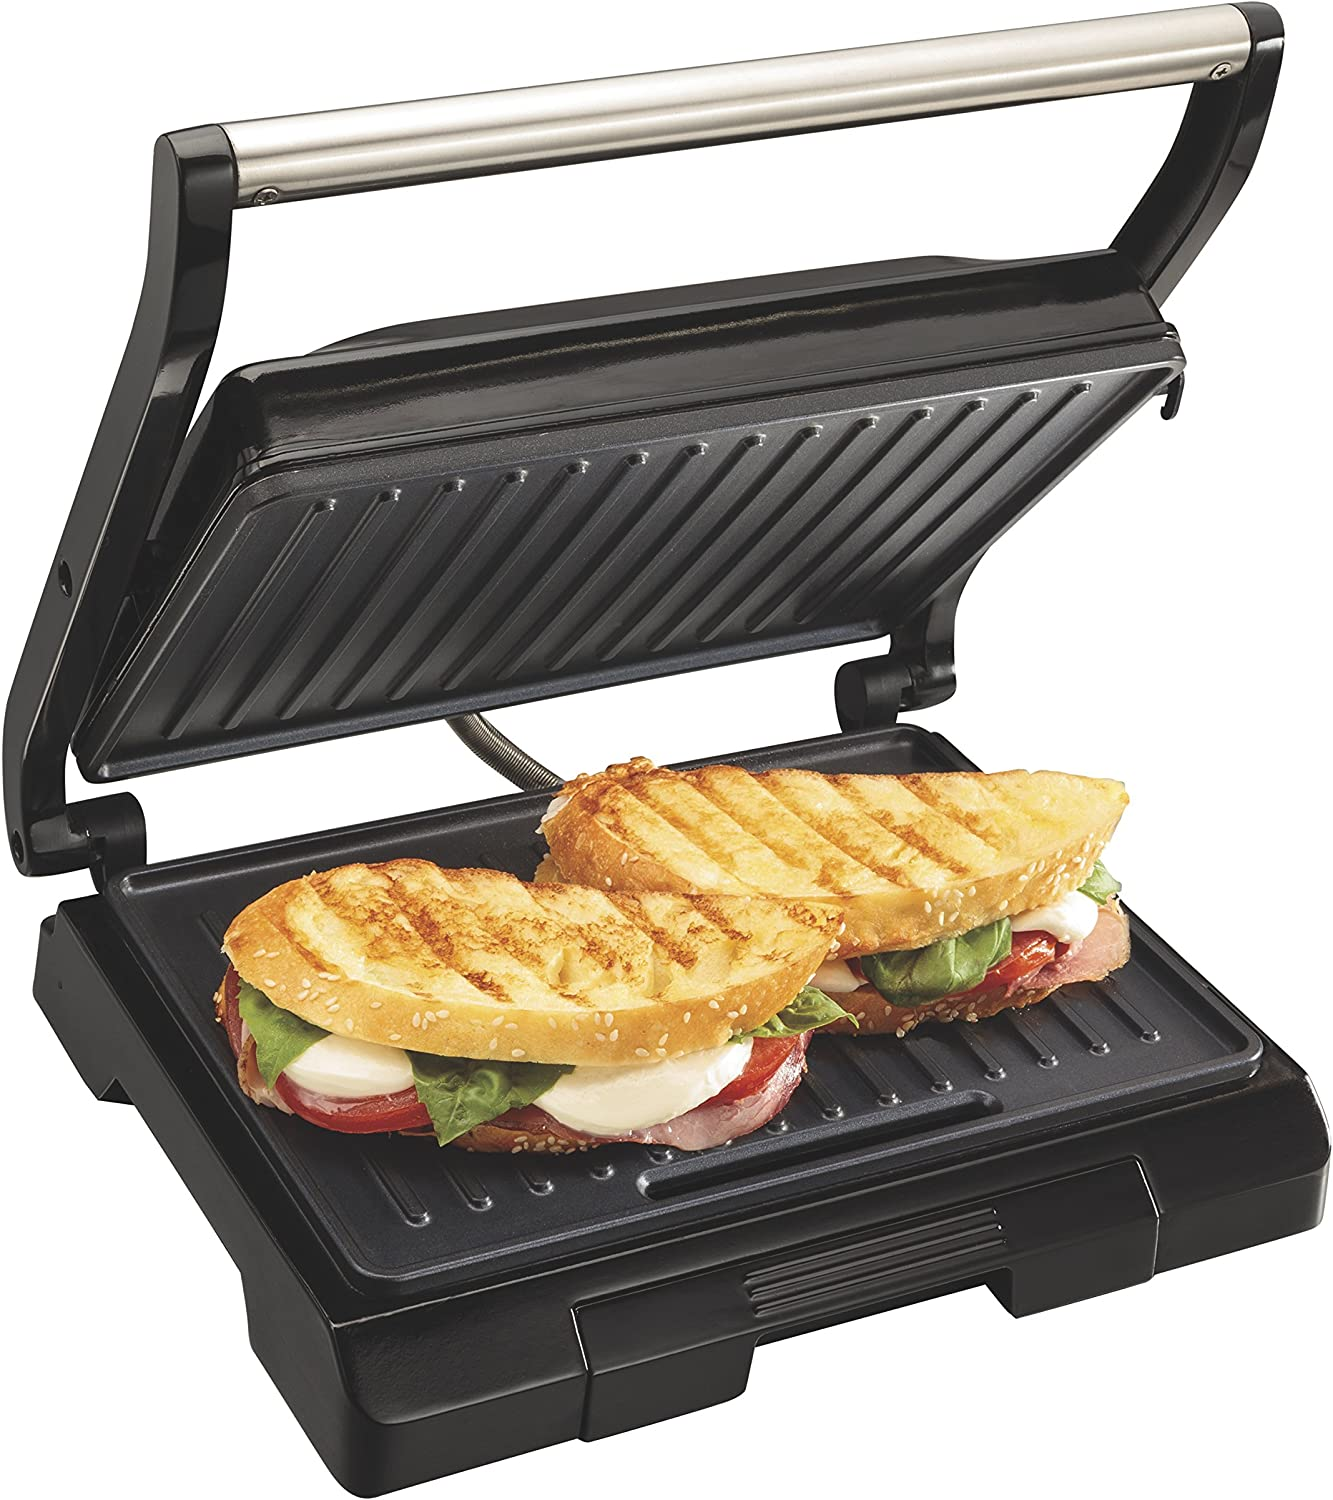 Proctor Silex 4 Serving Panini Press, Sandwich Maker and Compact Indoor Grill, Upright Storage, Easy Clean Nonstick Grids, Black 25440